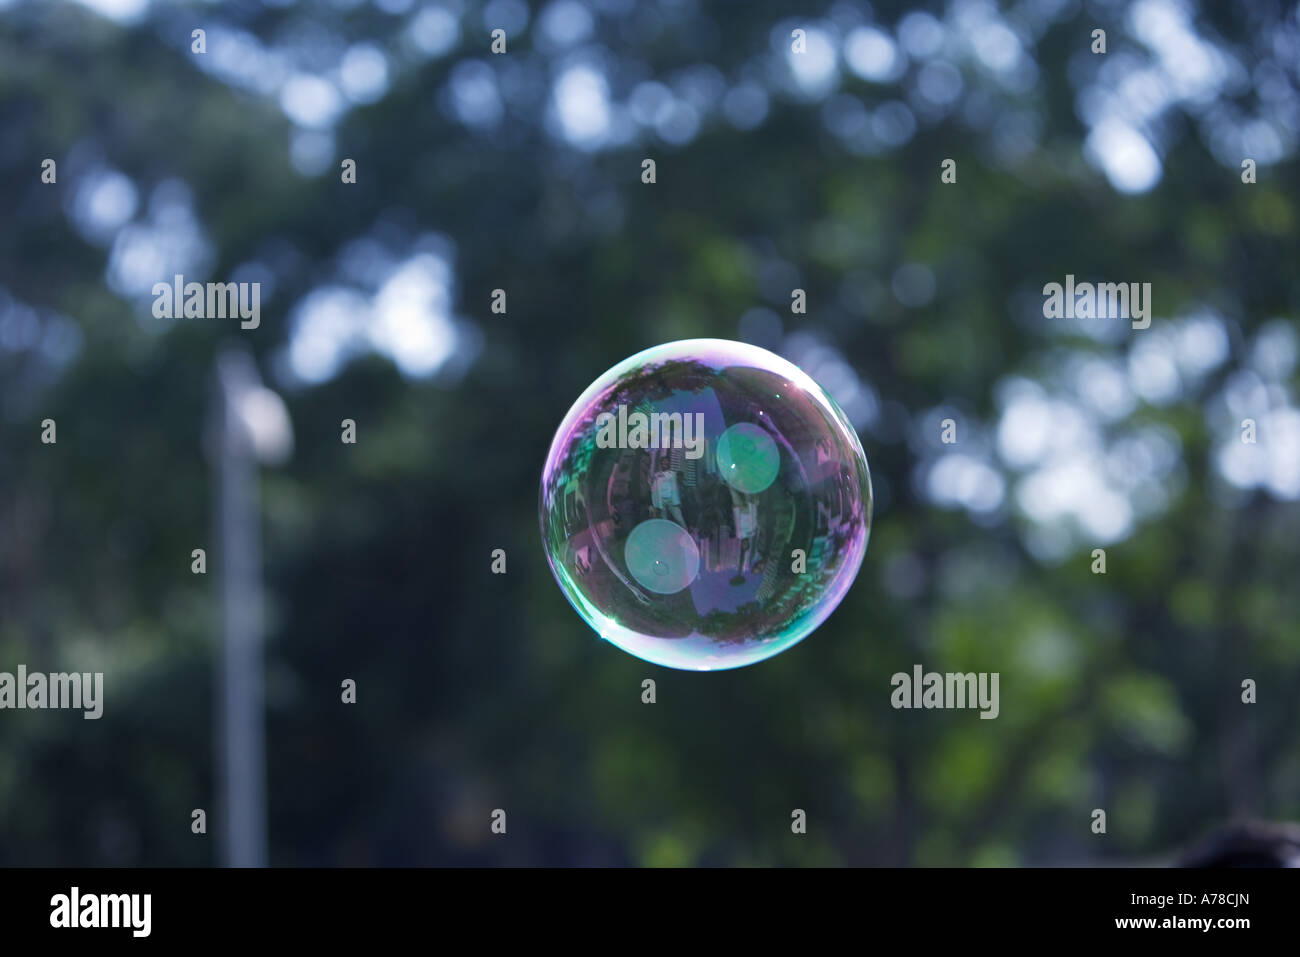 Bubble floating in air - Stock Image